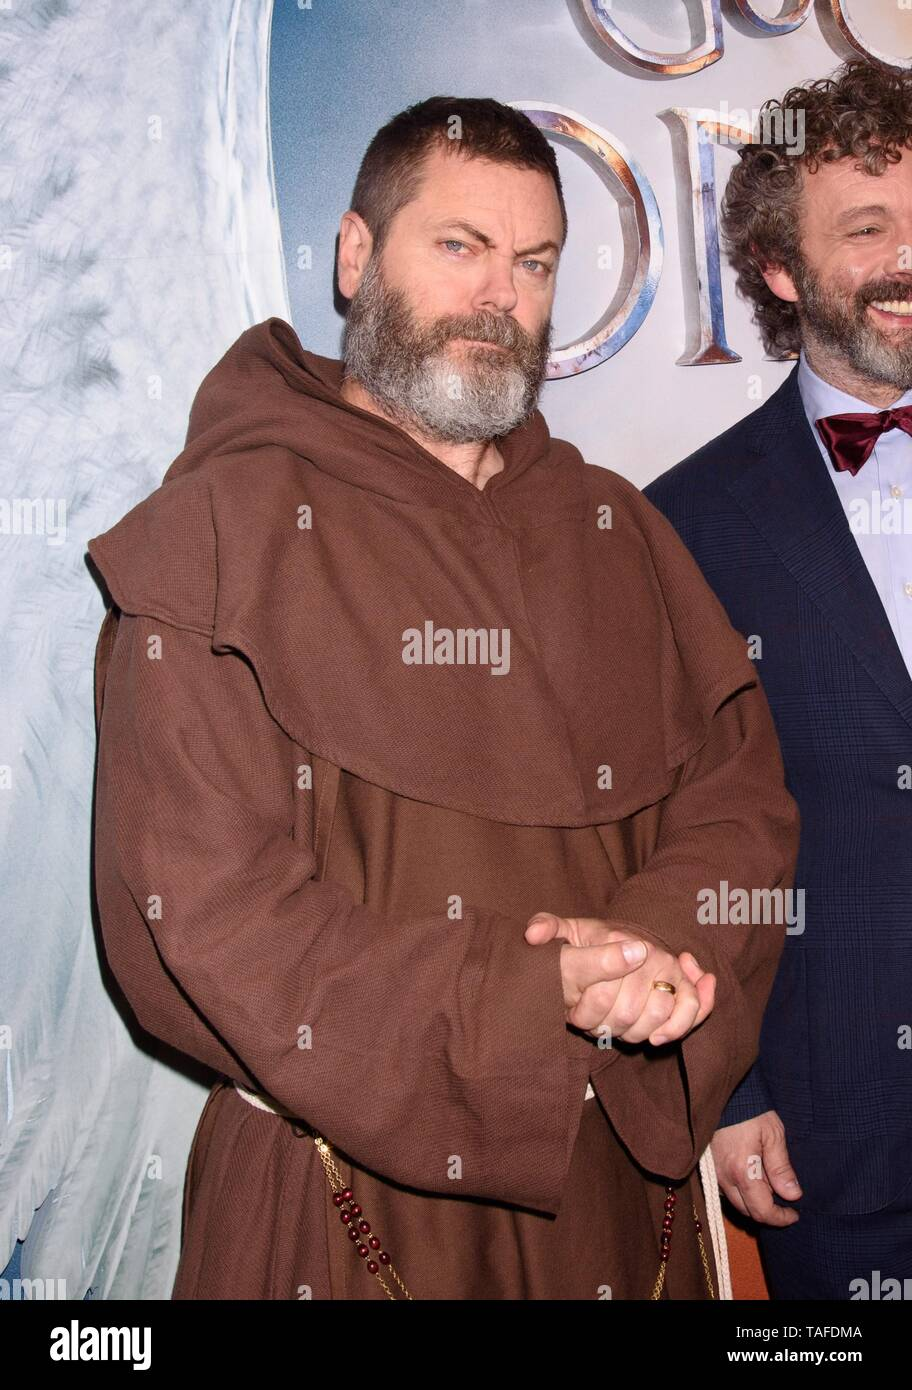 New York, NY, USA. 23rd May, 2019. Nick Offerman at arrivals for Screening of Amazon Prime Original GOOD OMENS, Whitby Hotel, New York, NY May 23, 2019. Credit: RCF/Everett Collection/Alamy Live News - Stock Image